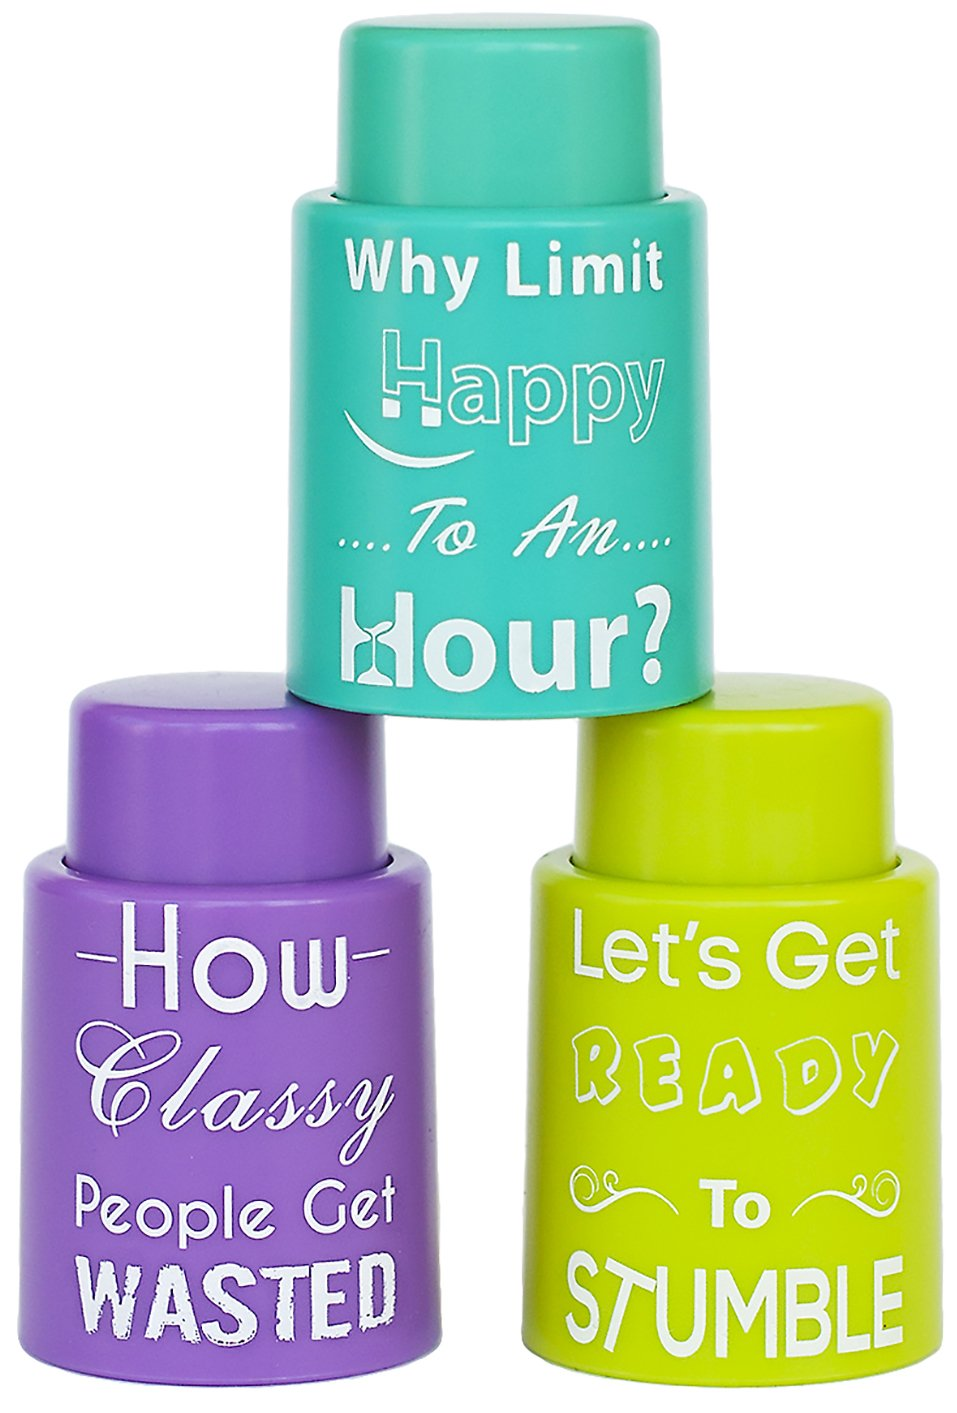 Paragon Storm Set of 3 Vacuum Seal Wine Stoppers: Professional Quality, Great Novelty Gift, Fun Phrases With Unique Colors